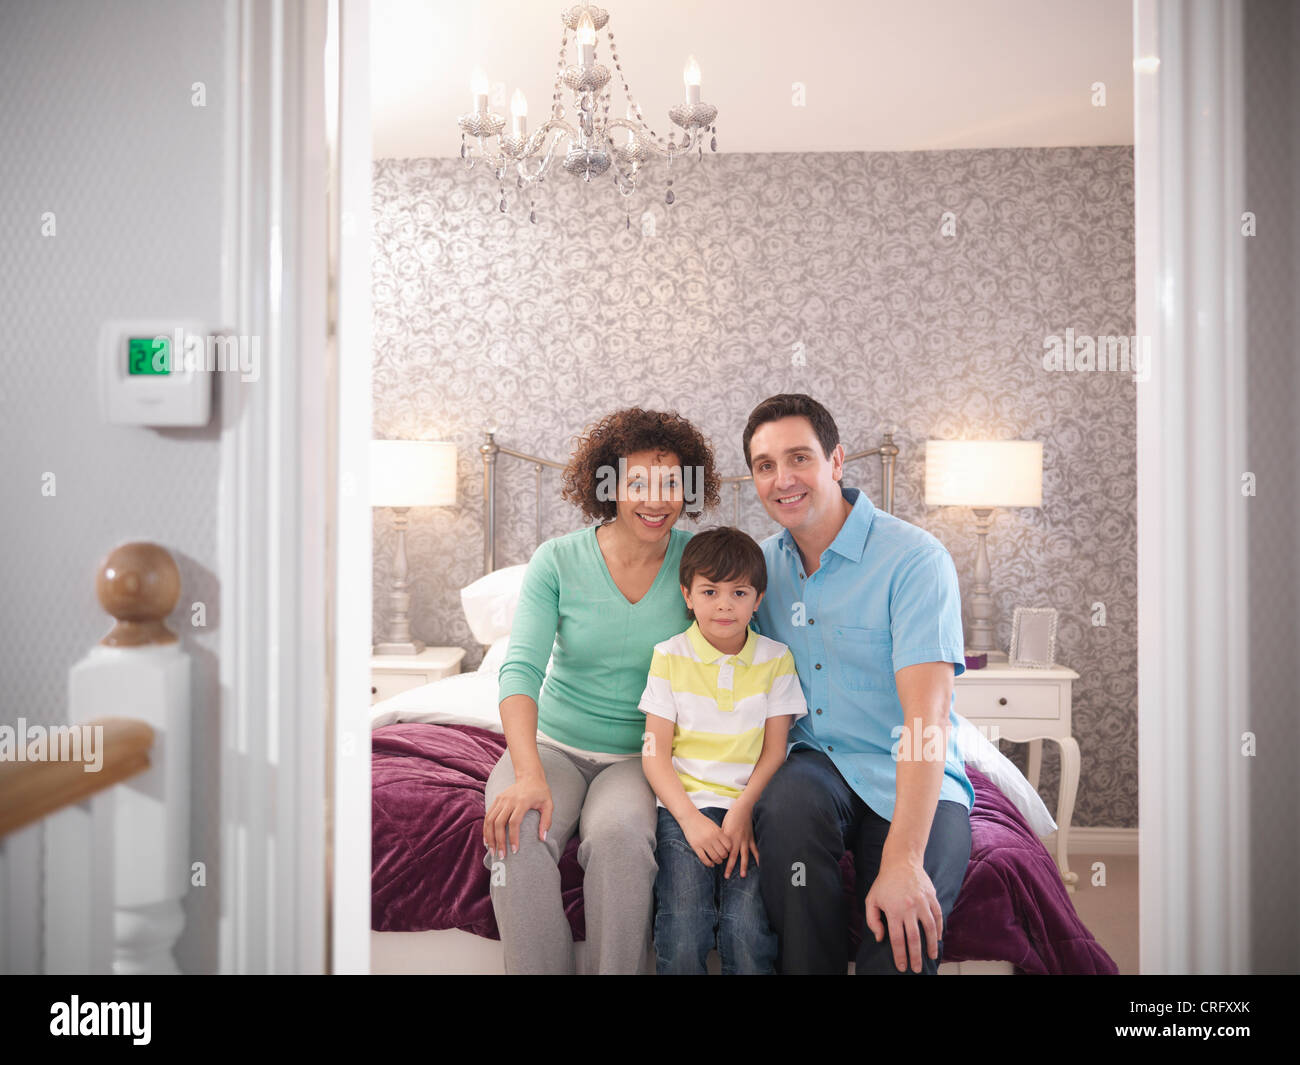 Family smiling together in bedroom - Stock Image